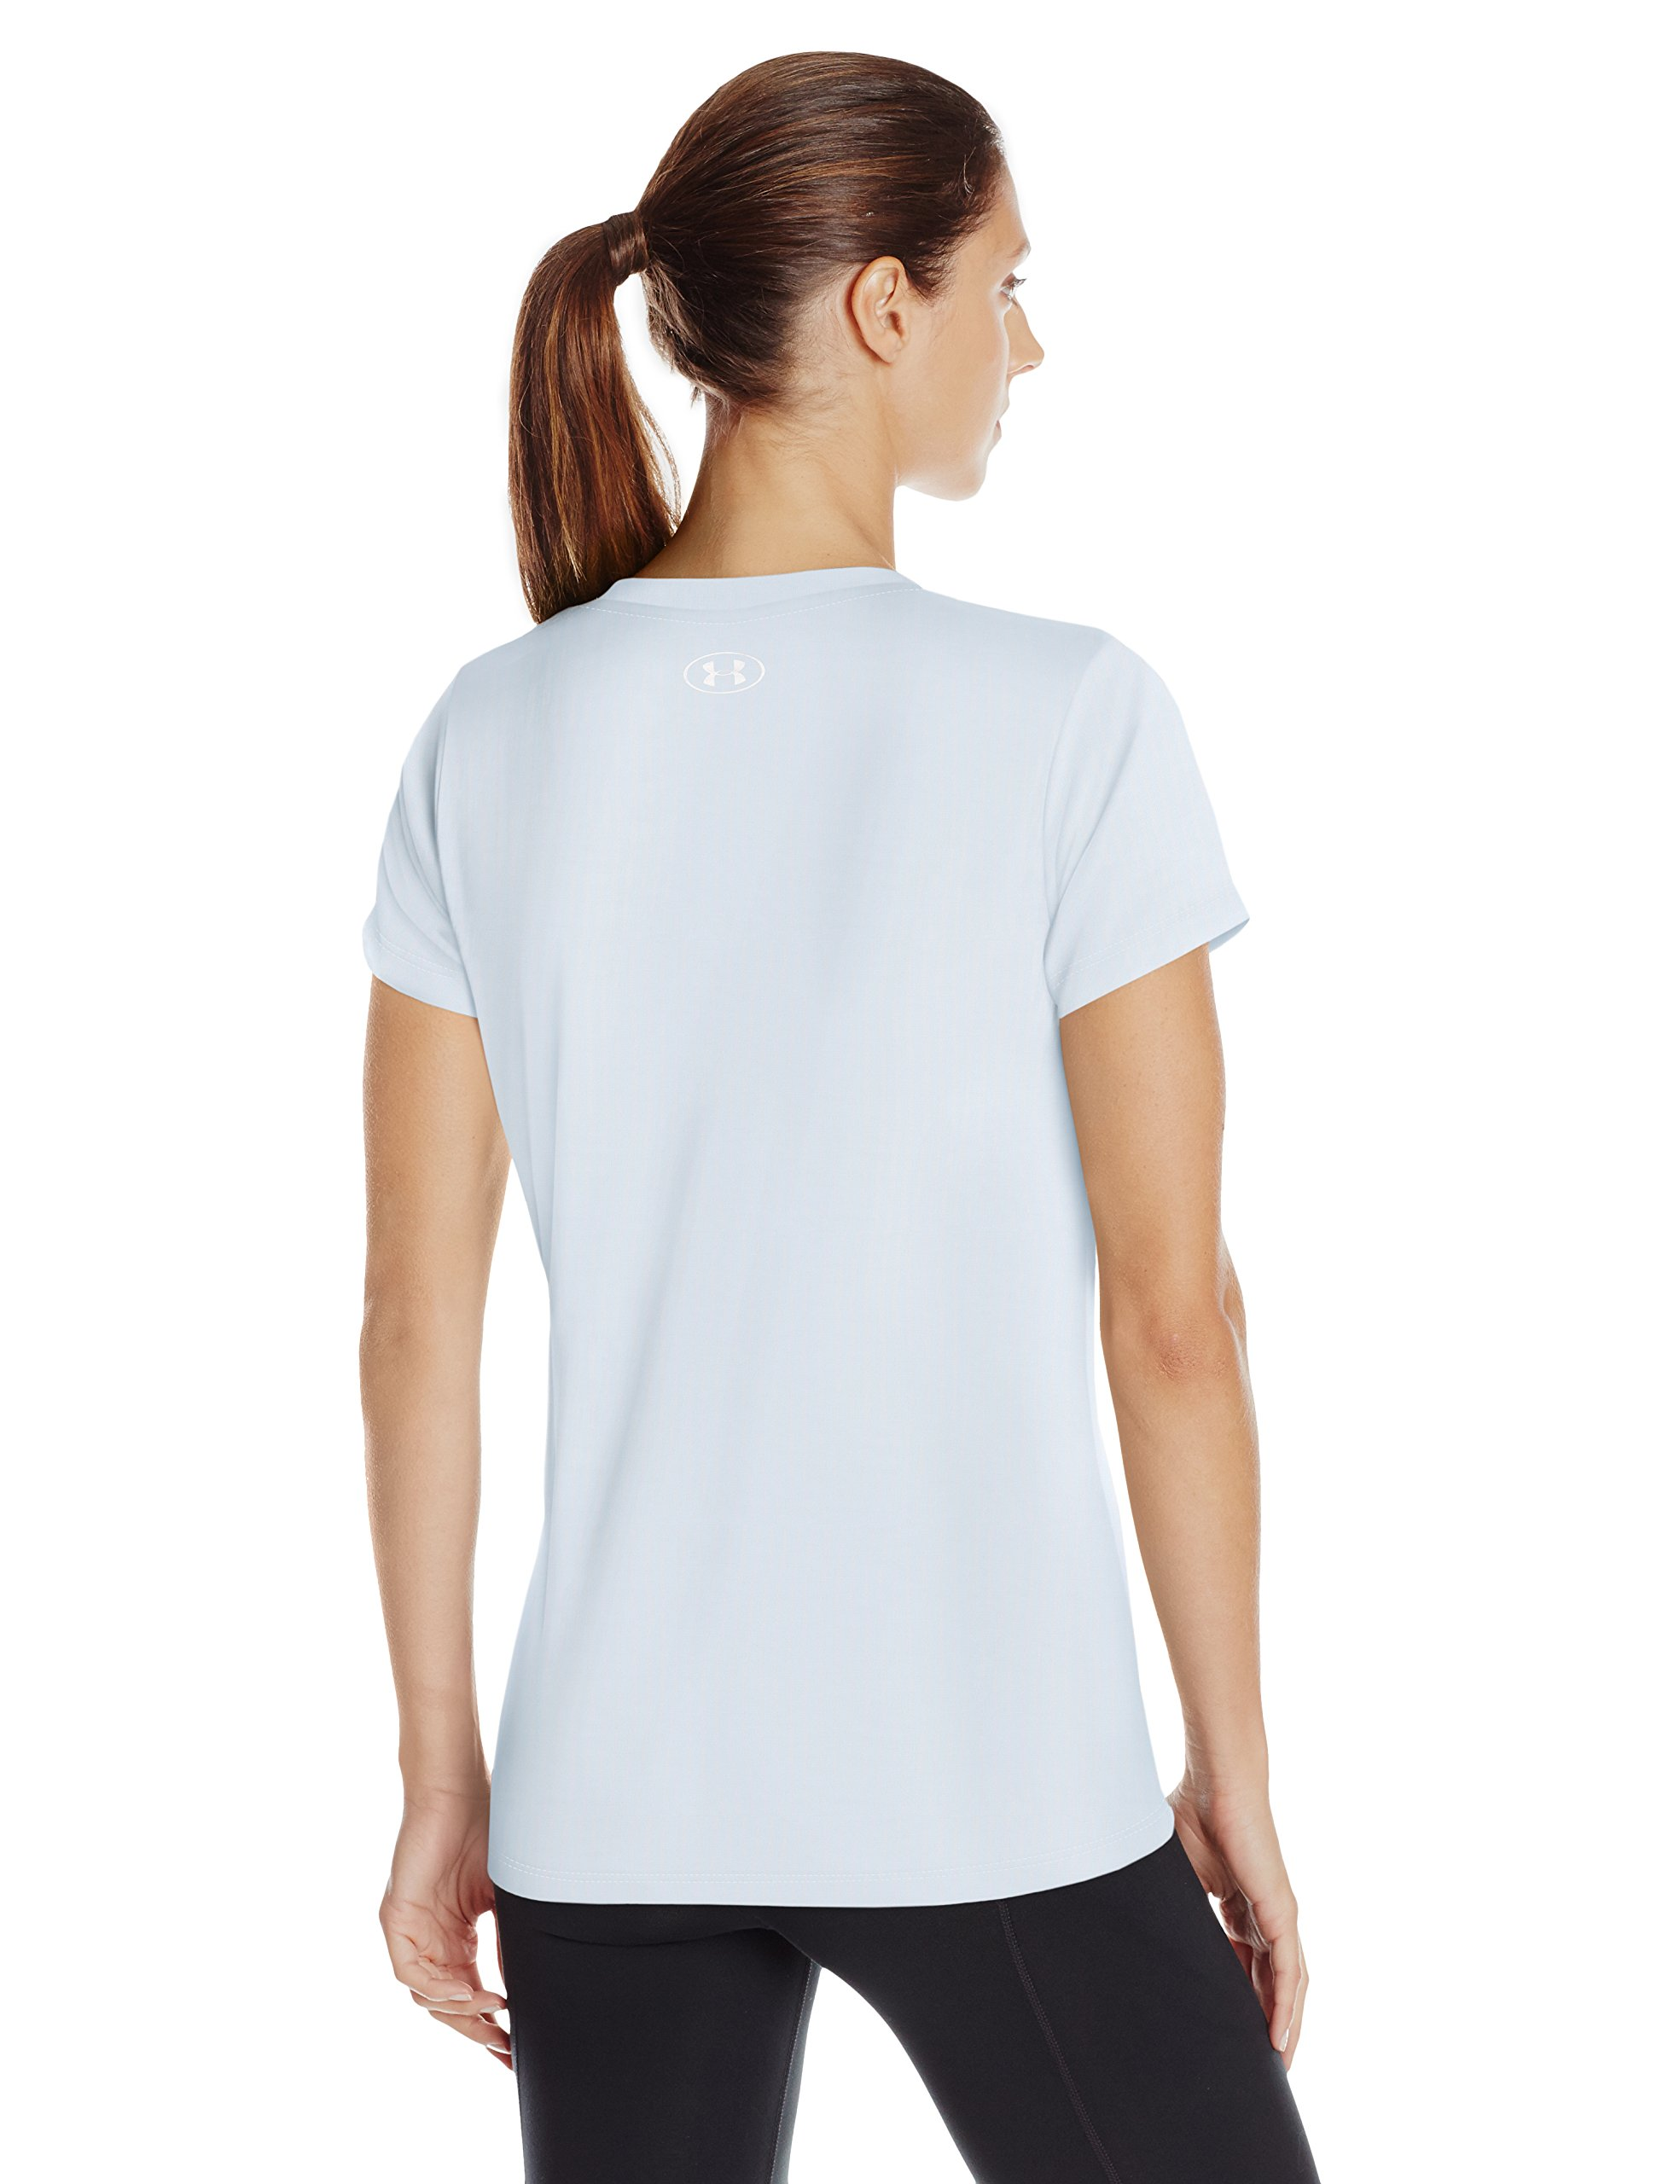 Under Armour Women's Tech Twist V-Neck, Halogen Blue (441)/Metallic Silver, X-Small by Under Armour (Image #2)